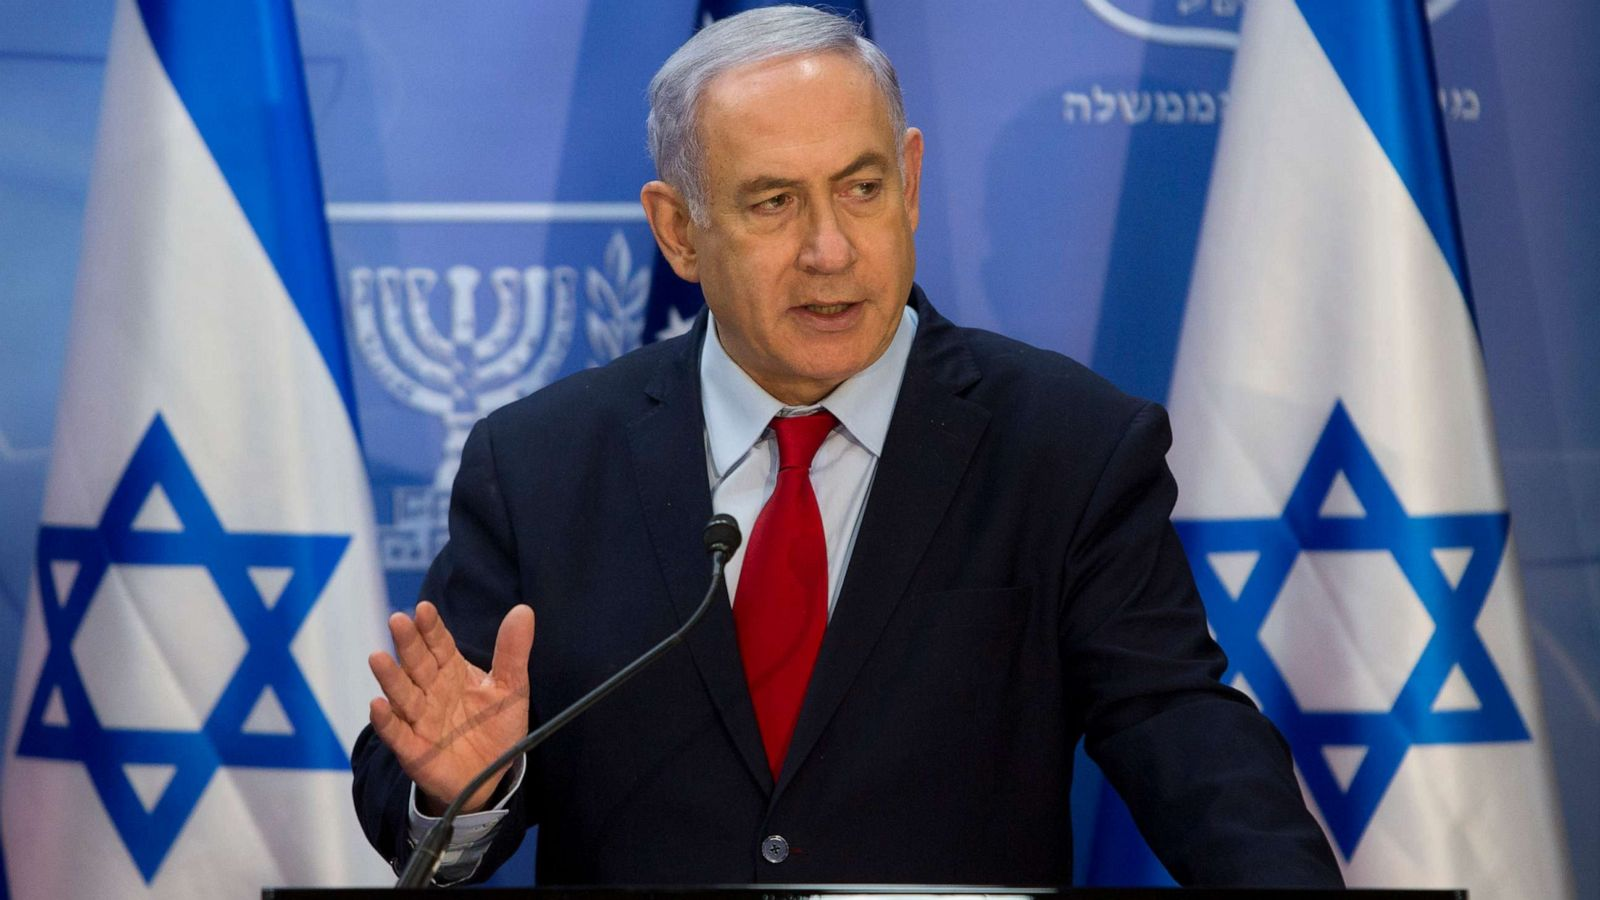 Benjamin Netanyahu faces strong challenge in final days before election:  Analysis - ABC News